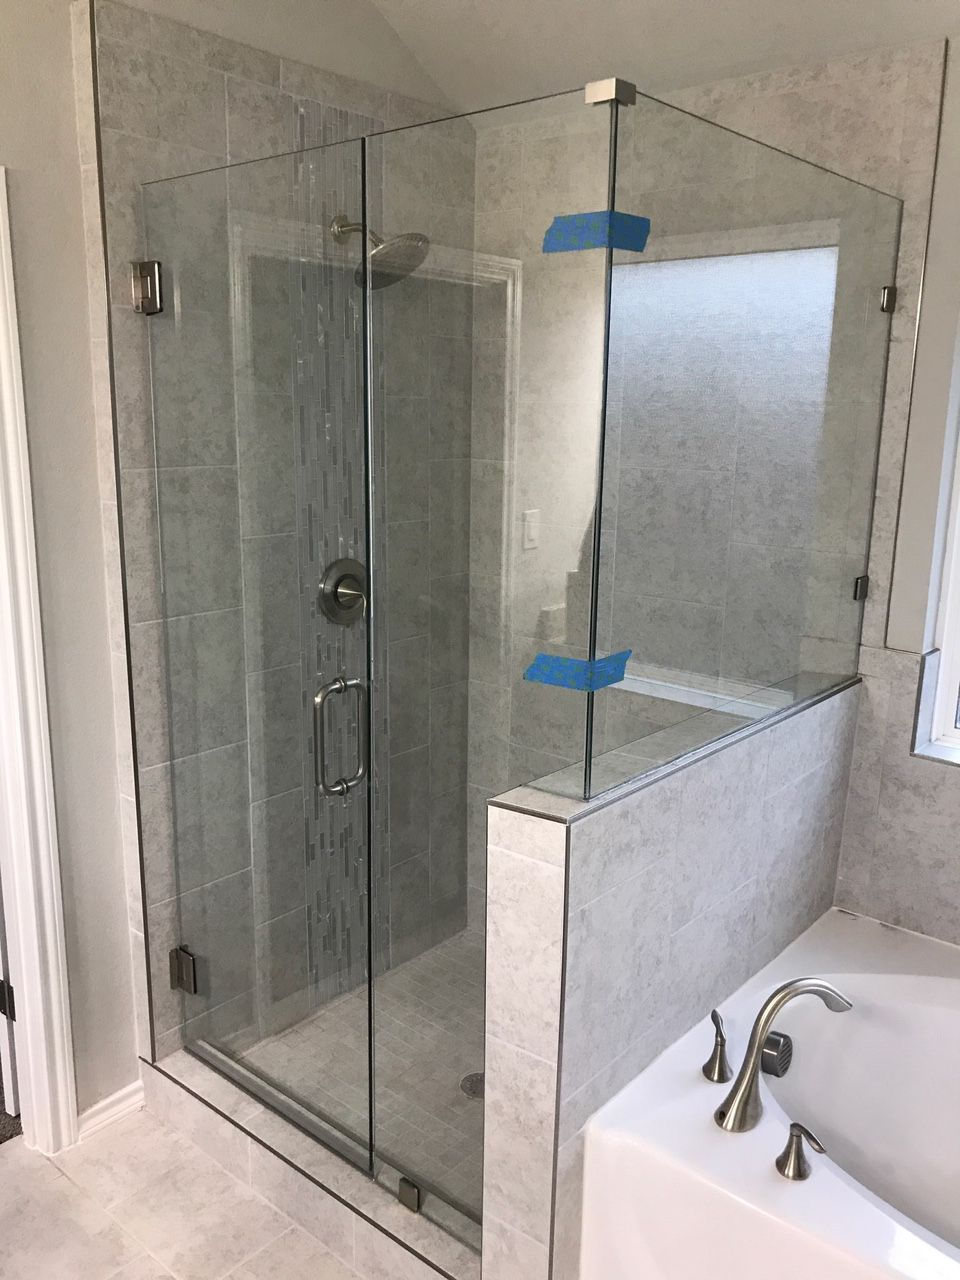 Dallas Bath And Gl Inc Frameless 90 Degree Shower Enclosure With 3 8 Heavy Clear Silver Chrome Hardware From Crl